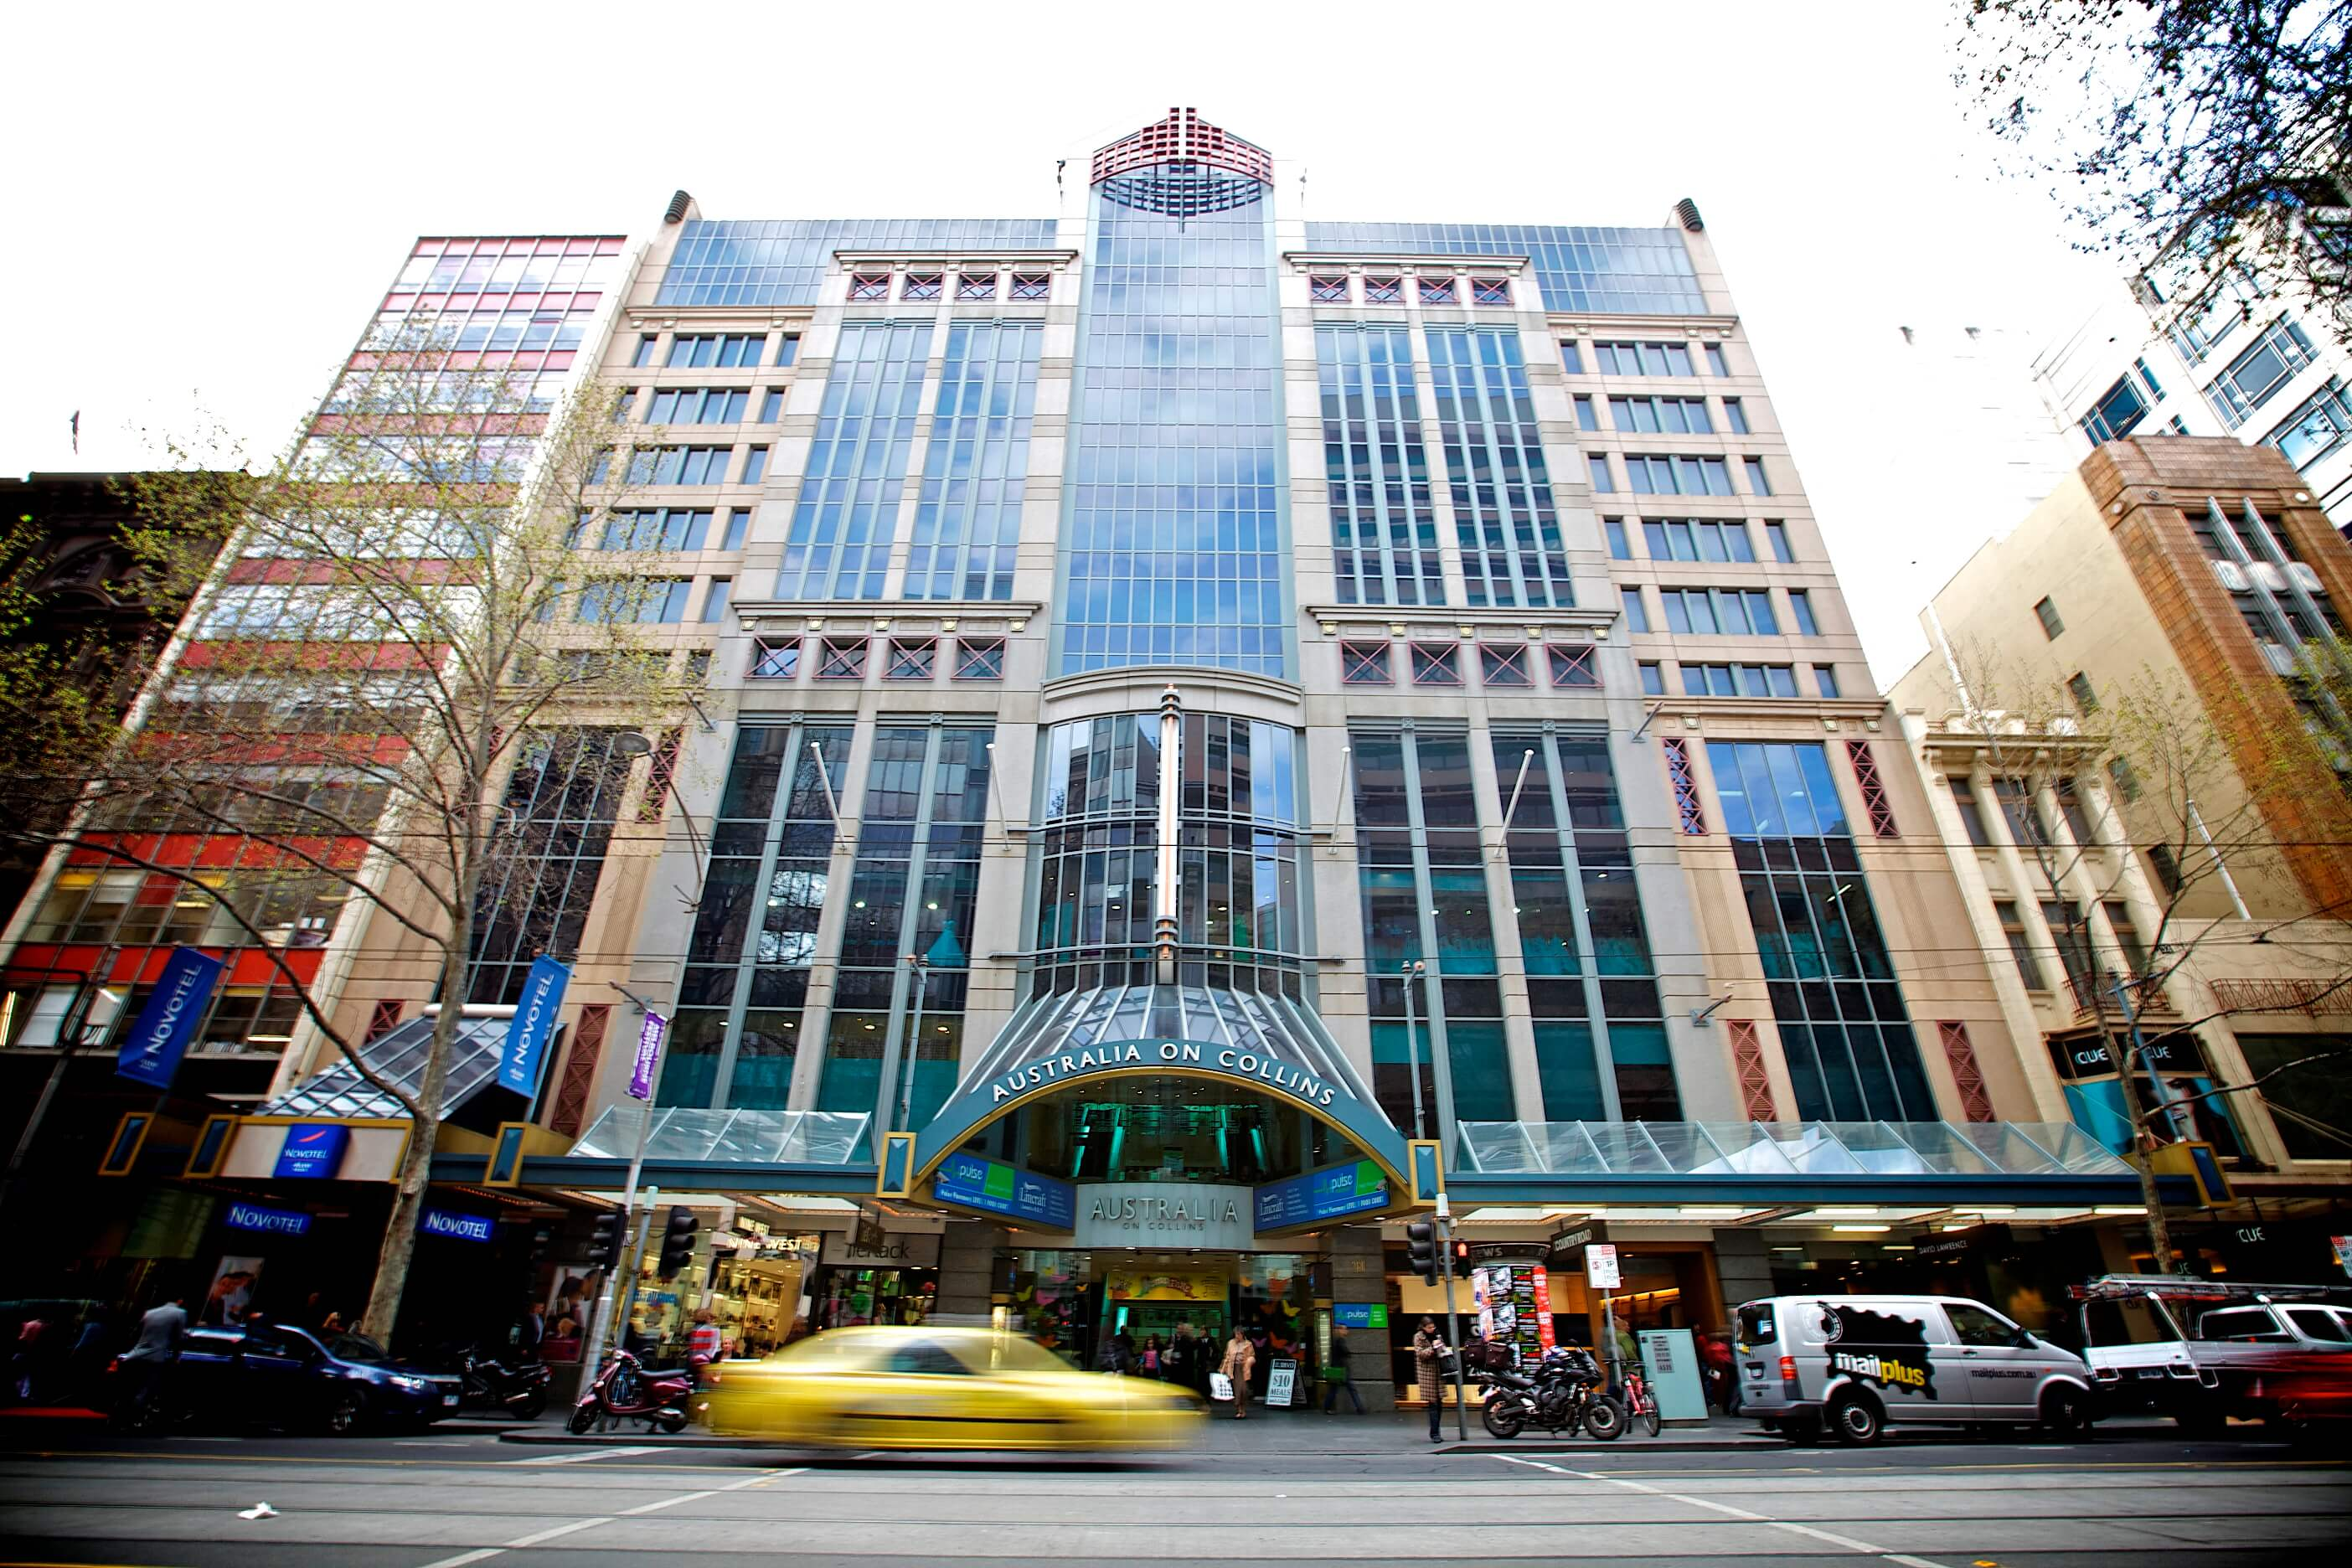 Hotel Exterior on Collins Street